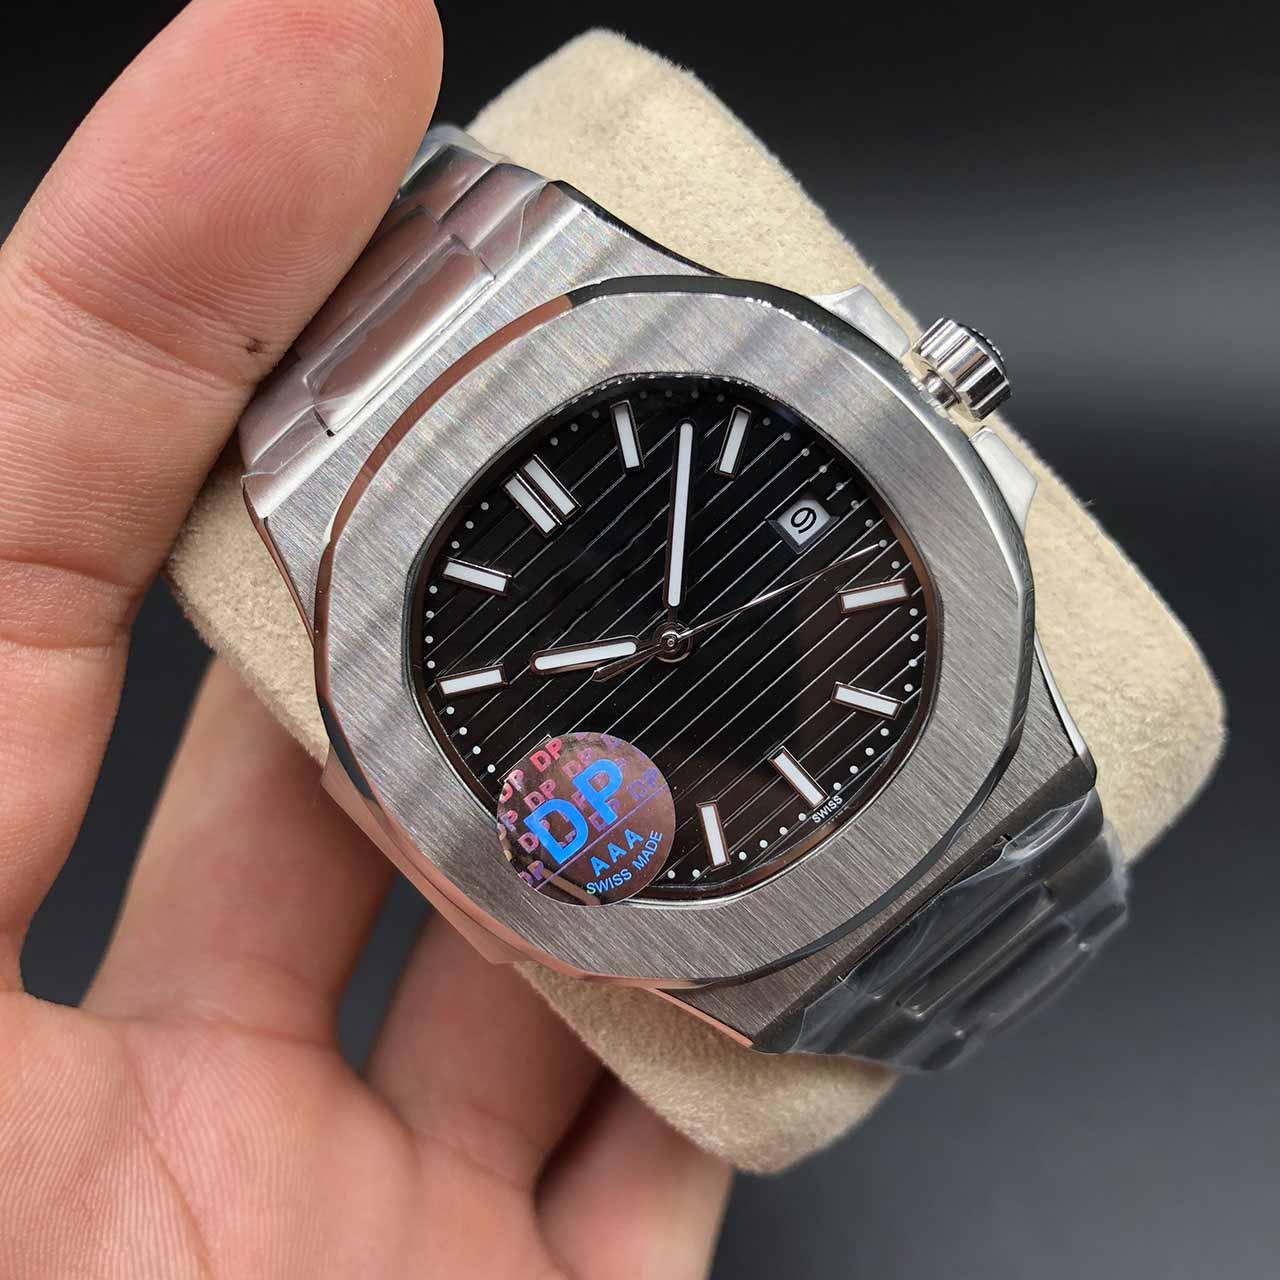 Joan007 Top Quality Blue Dial Asia 2813 Movement Sapphire Wristwatches 40mm Mechanical Transparent Automatic Mens Watch Watches